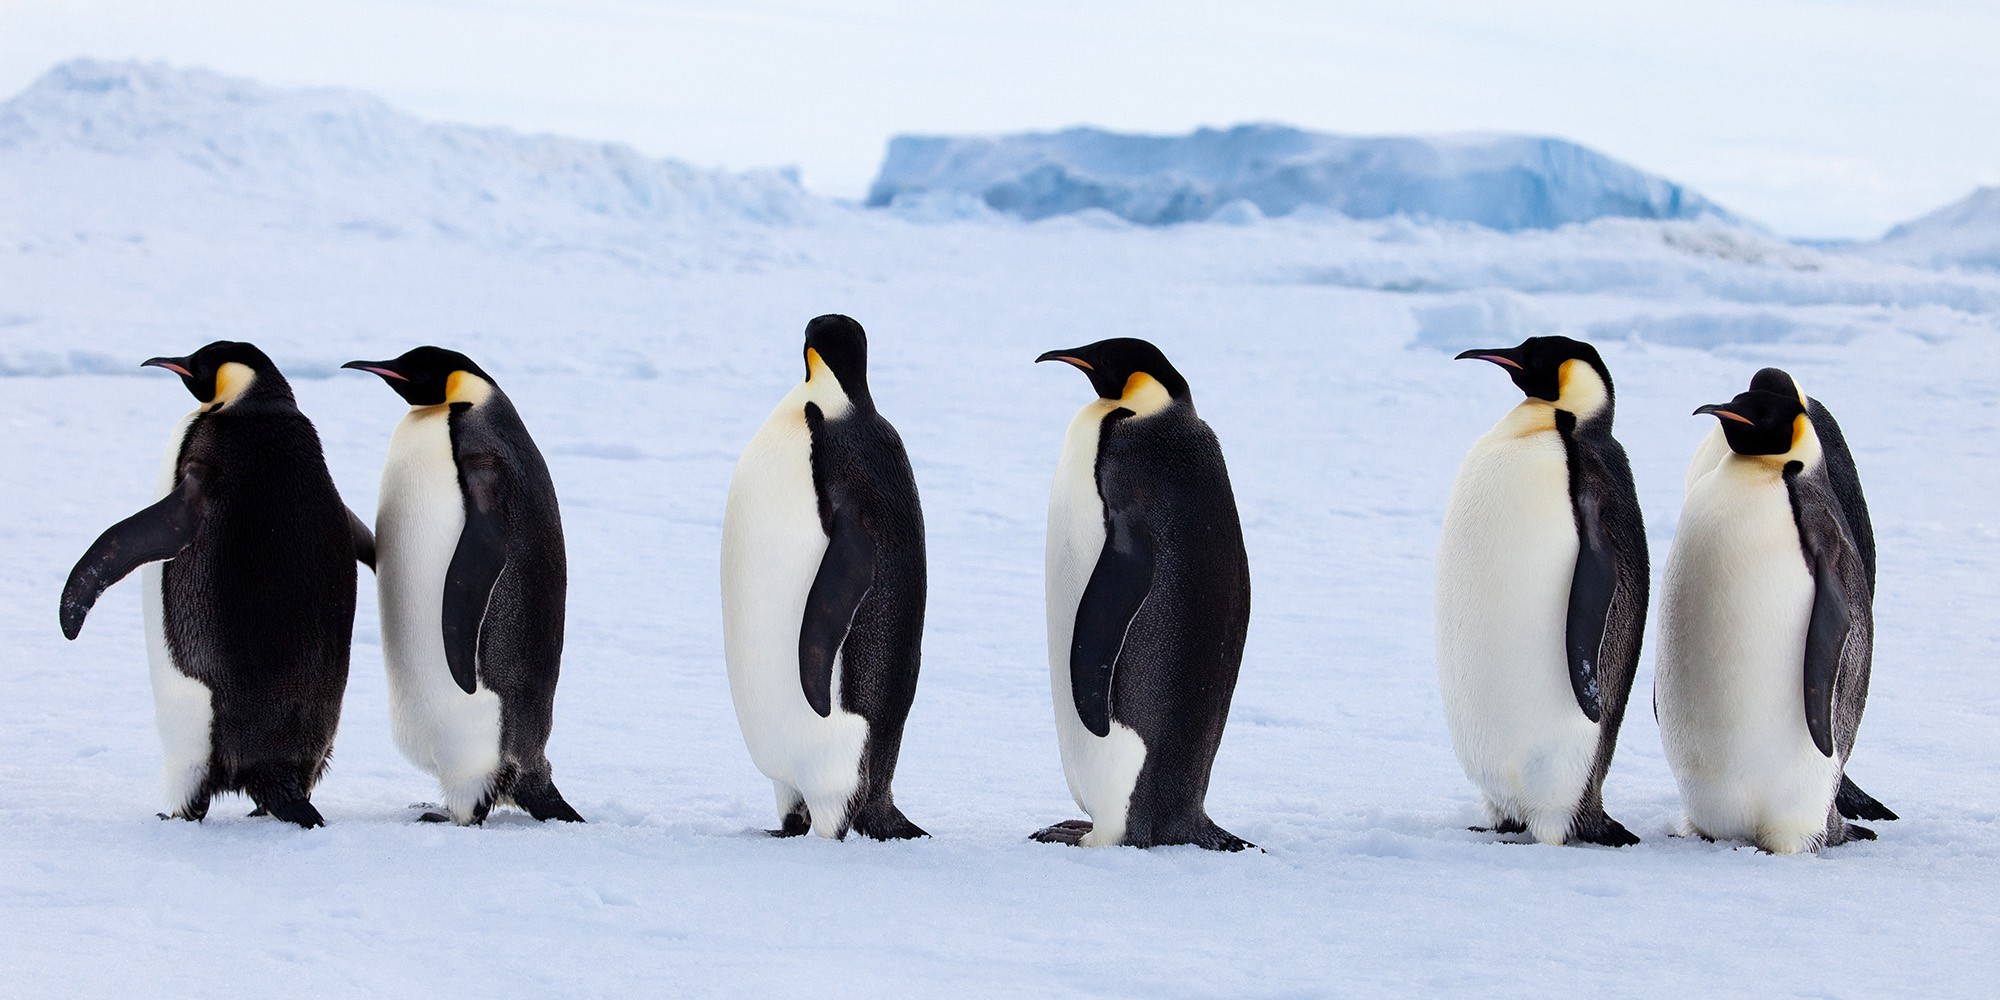 Confused penguins wondering where their component has gone.